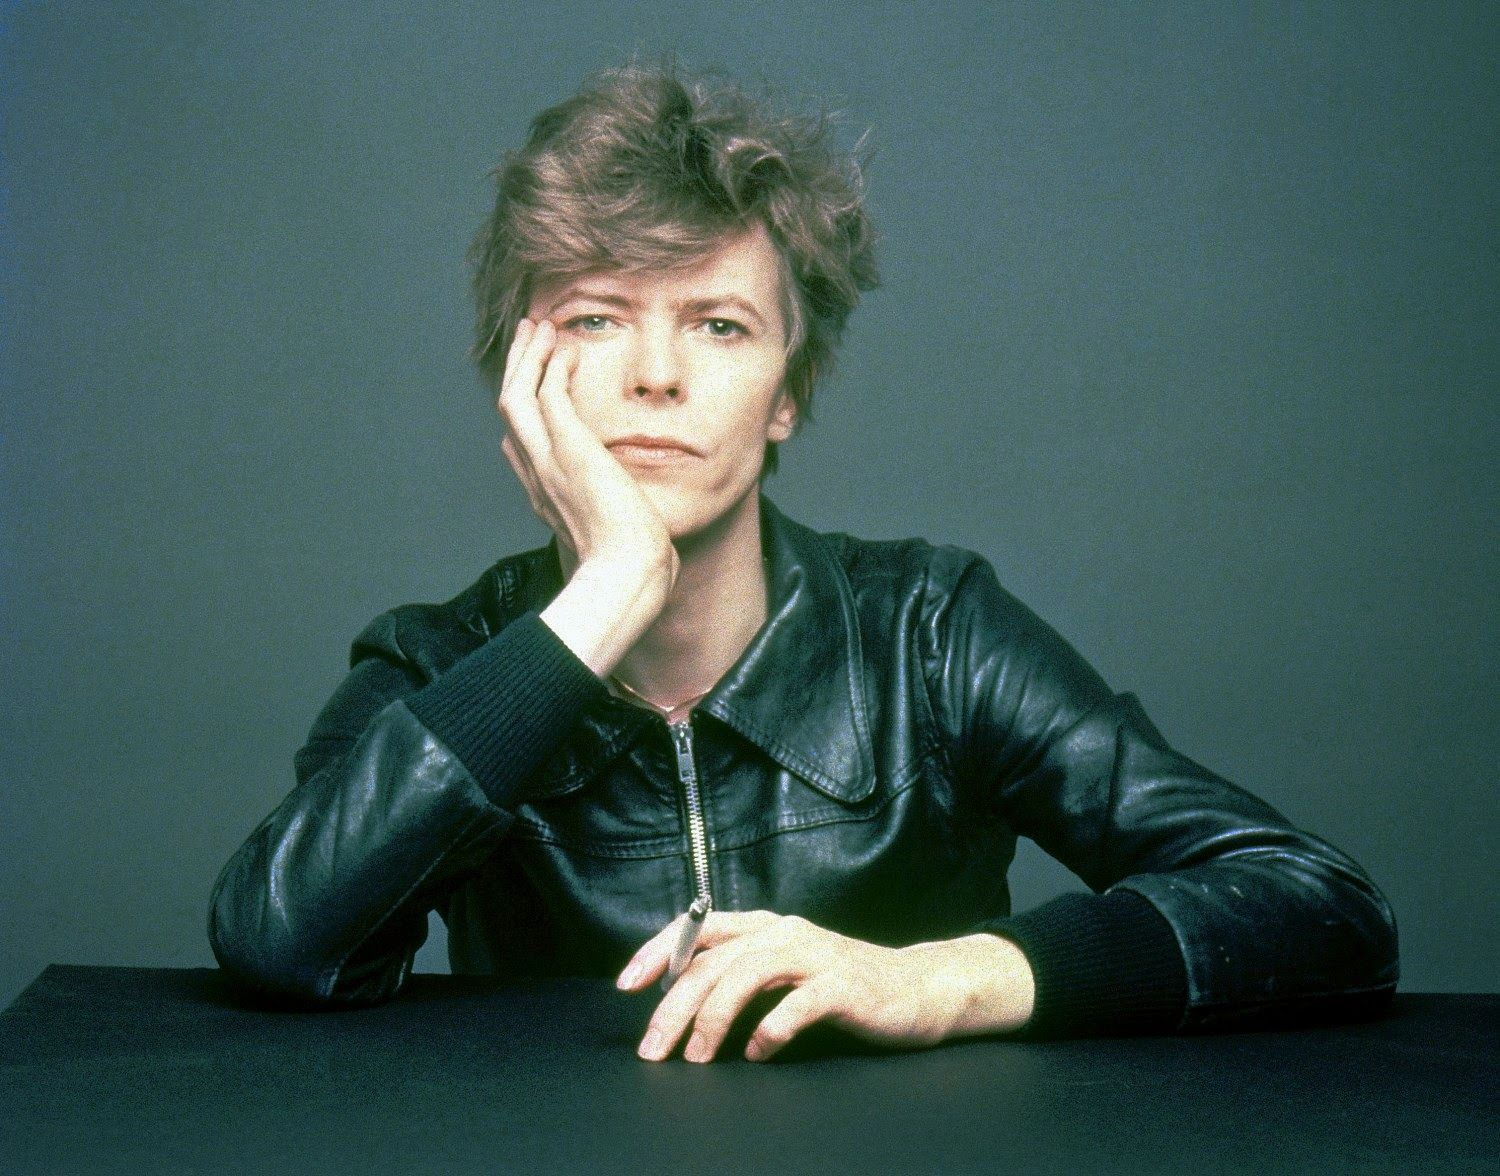 """The Outtakes Of David Bowie's Iconic €�heroes"""" Album Cover Shoot"""